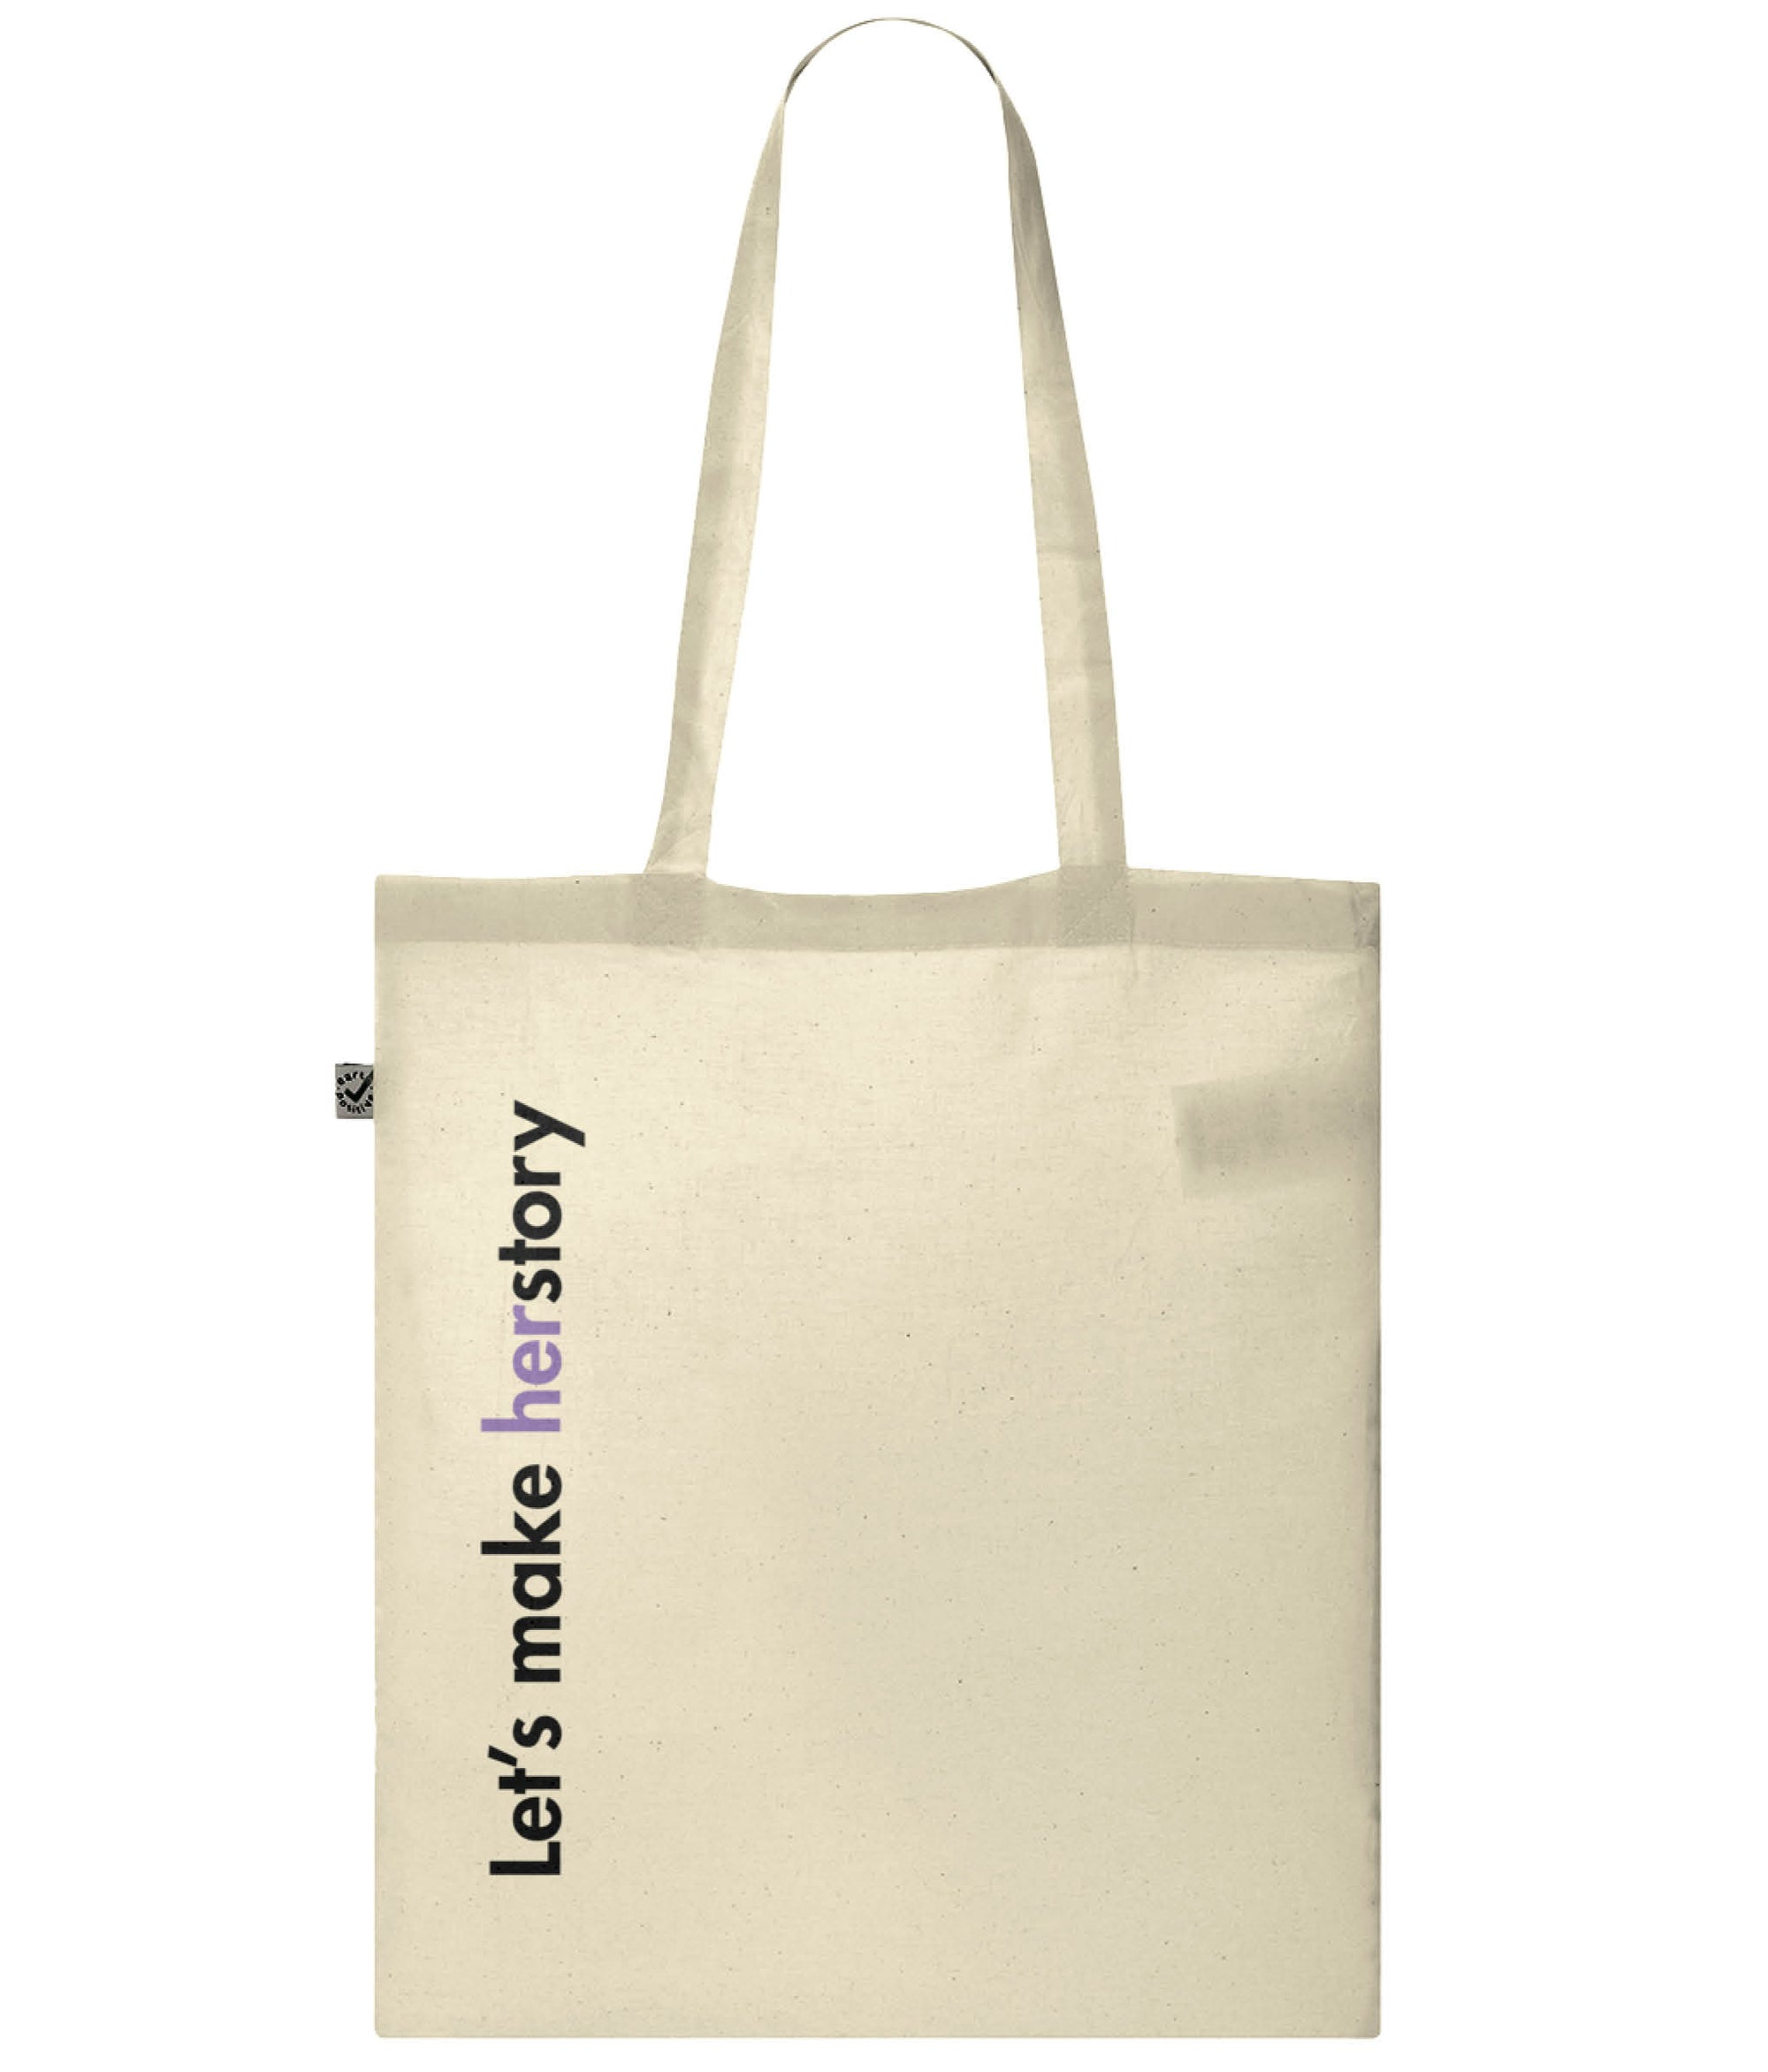 Let's Make Herstory Organic Combed Cotton Tote Bag Natural